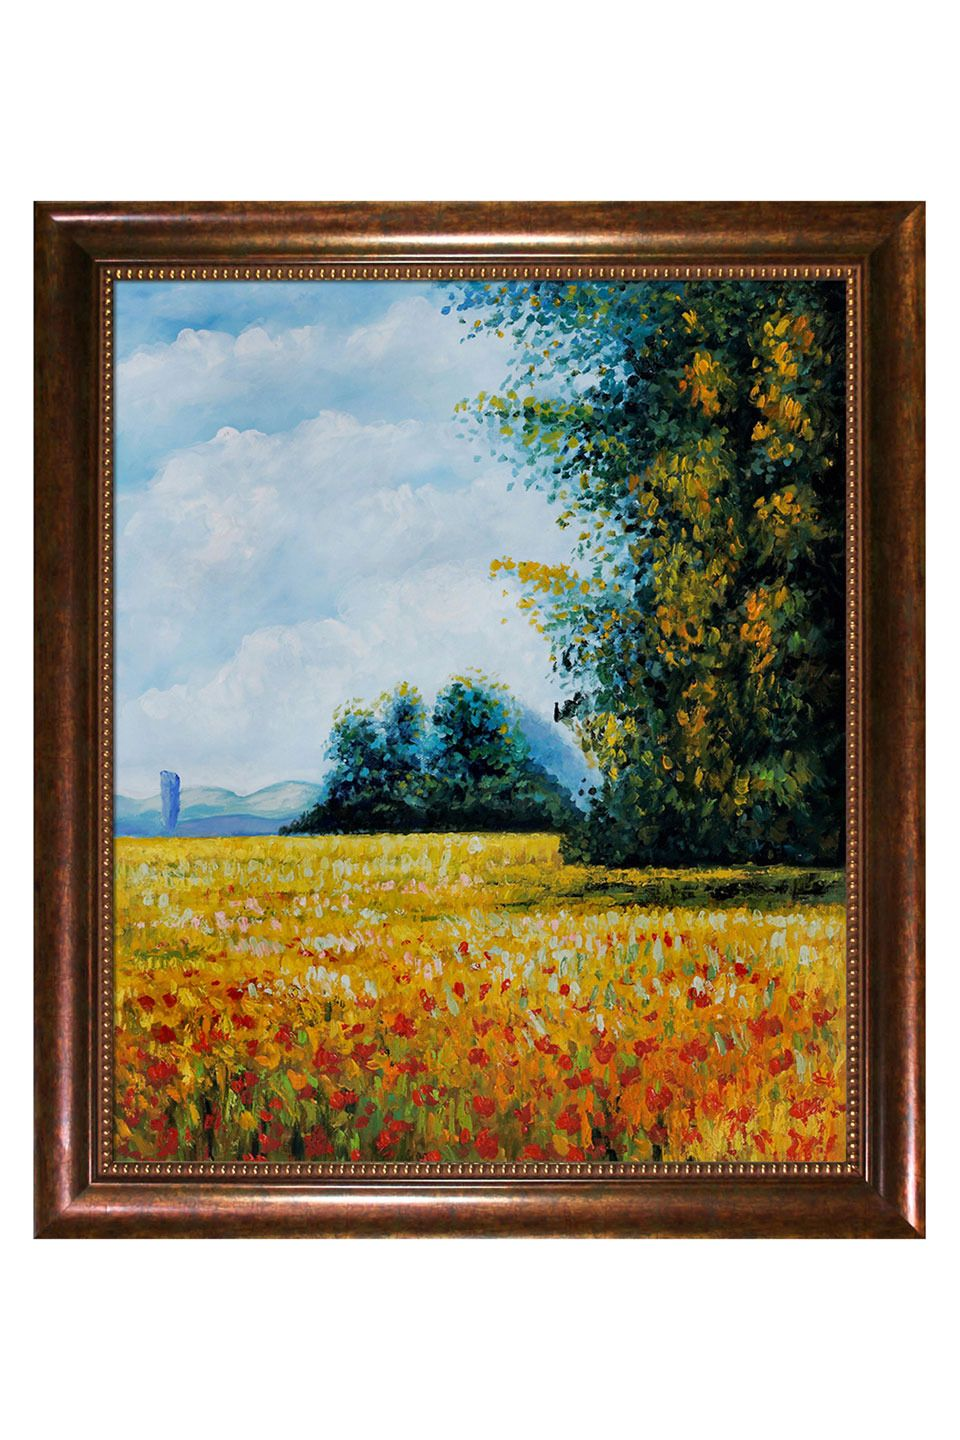 a glimpse at claue monets champ d avoine Shop for claude monet champ d'avoine (oat fields) hand painted framed canvas art get free delivery at overstockcom - your online art gallery store get 5% in rewards with club o - 10013294.